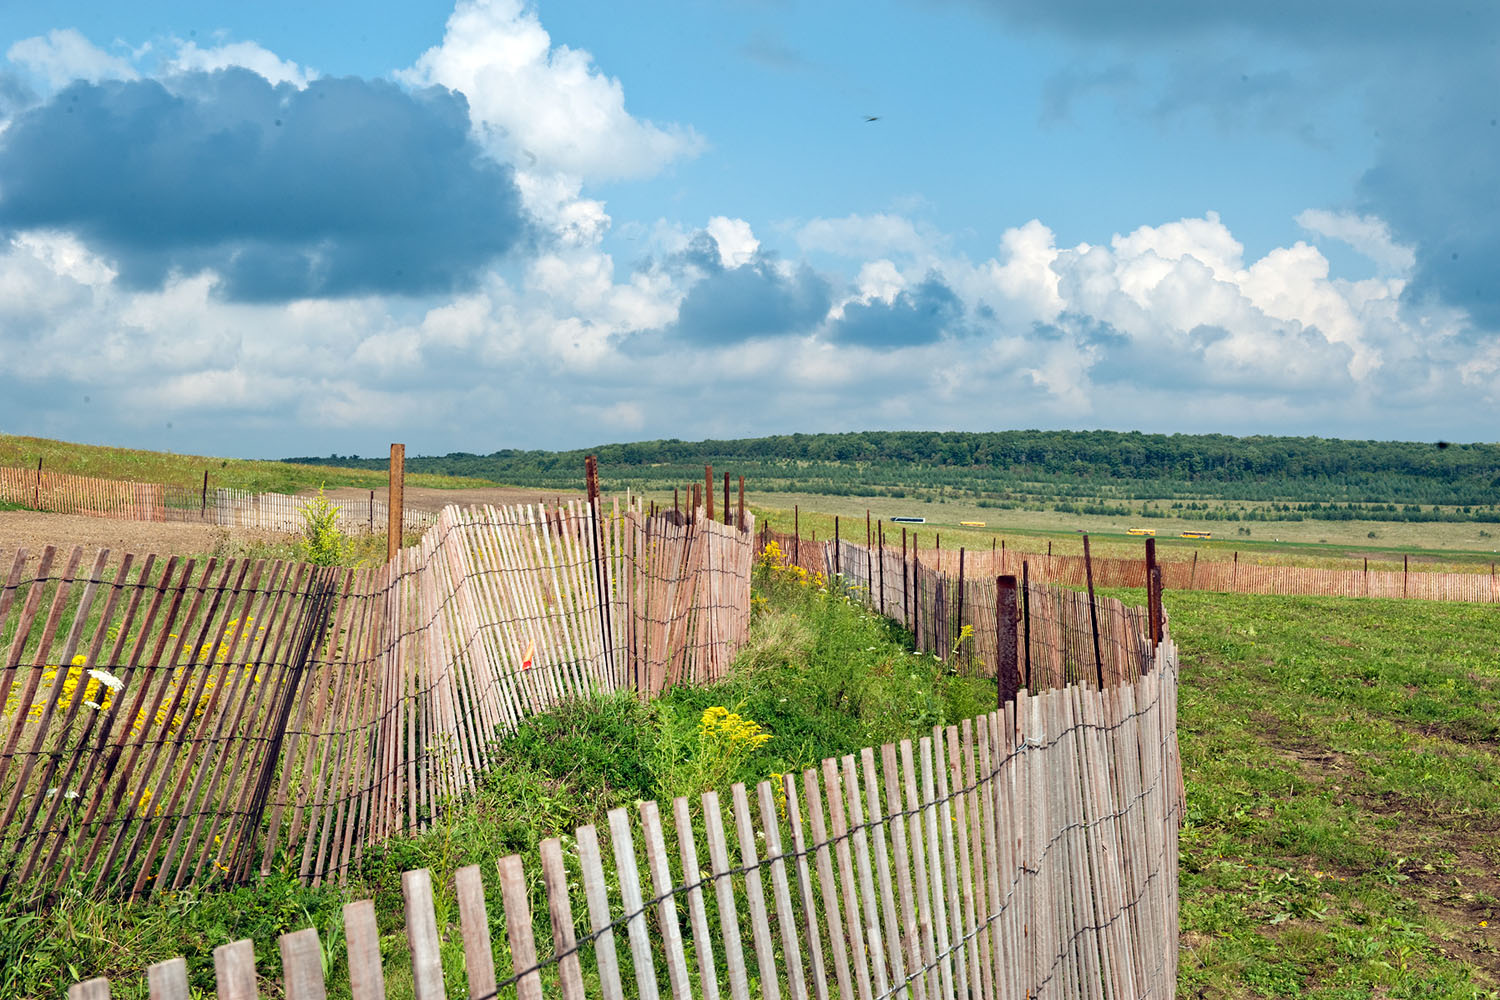 A view of the field where United Flight 93 crashed on 9/11 in Shanksville, Pa., Sept. 10, 2011.